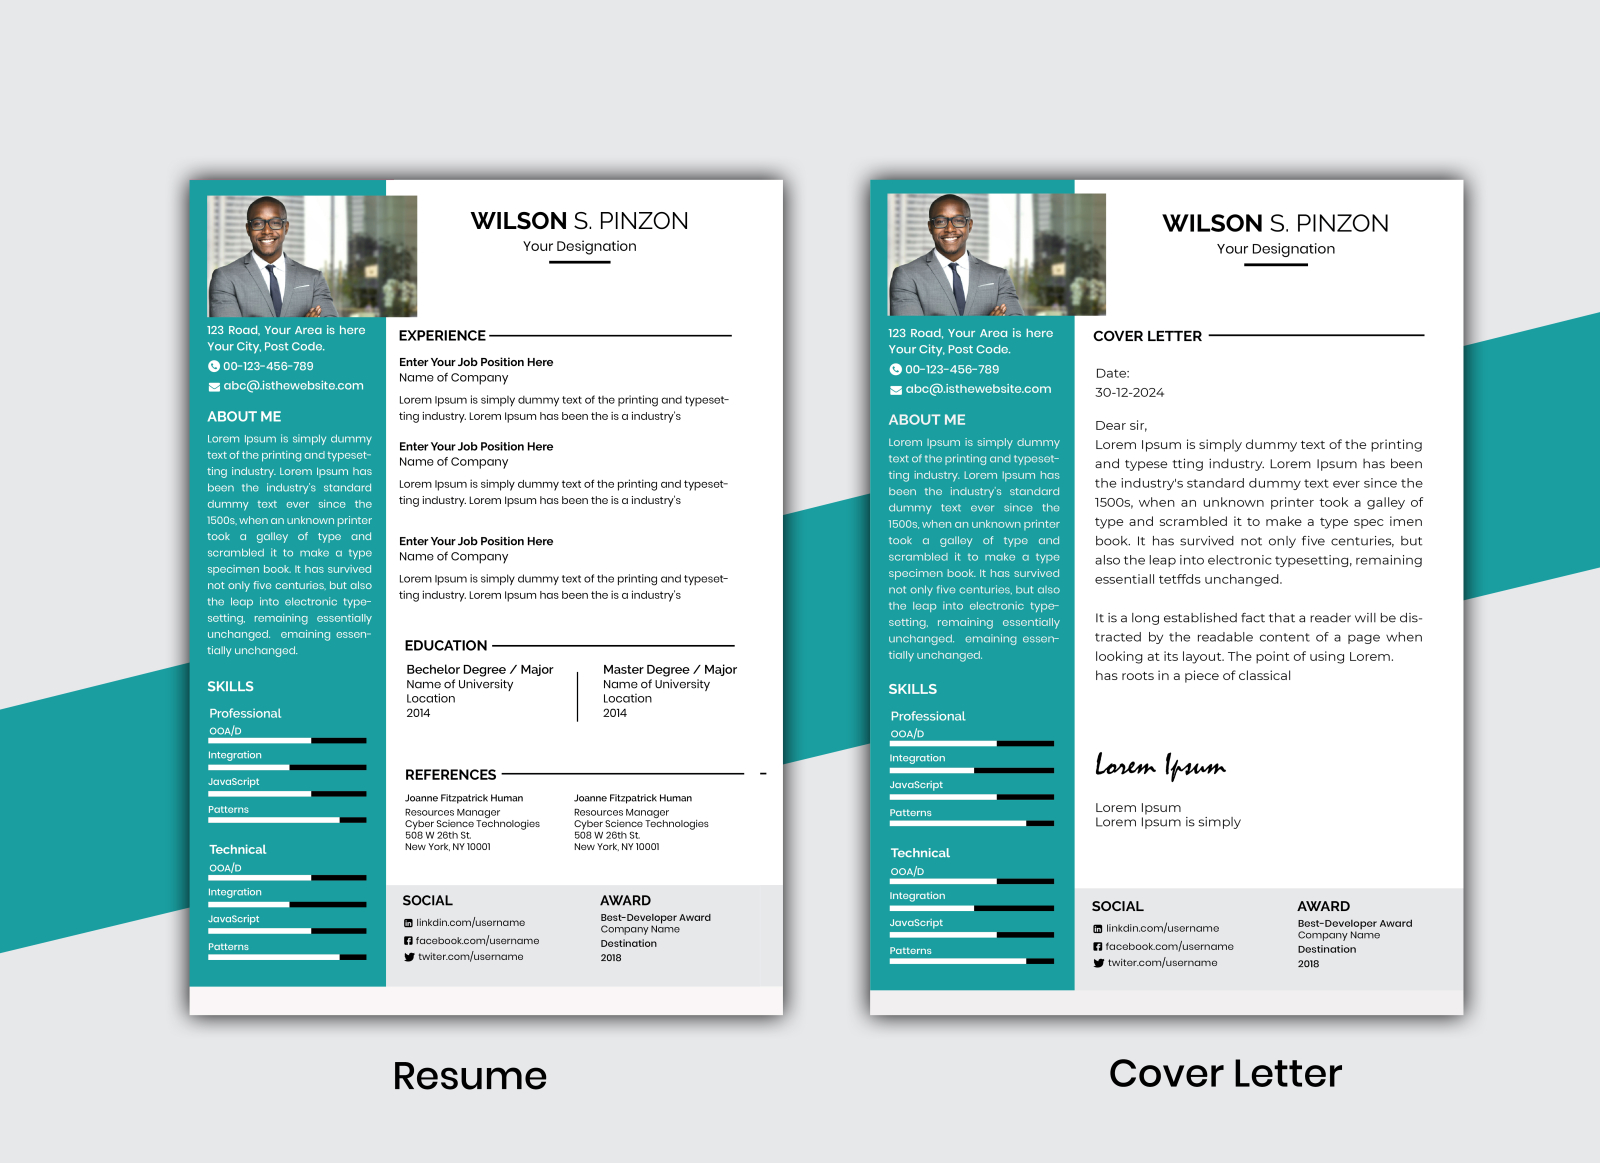 Resume Cv Template With Cover Letter By M M Rahman Sumon On Dribbble